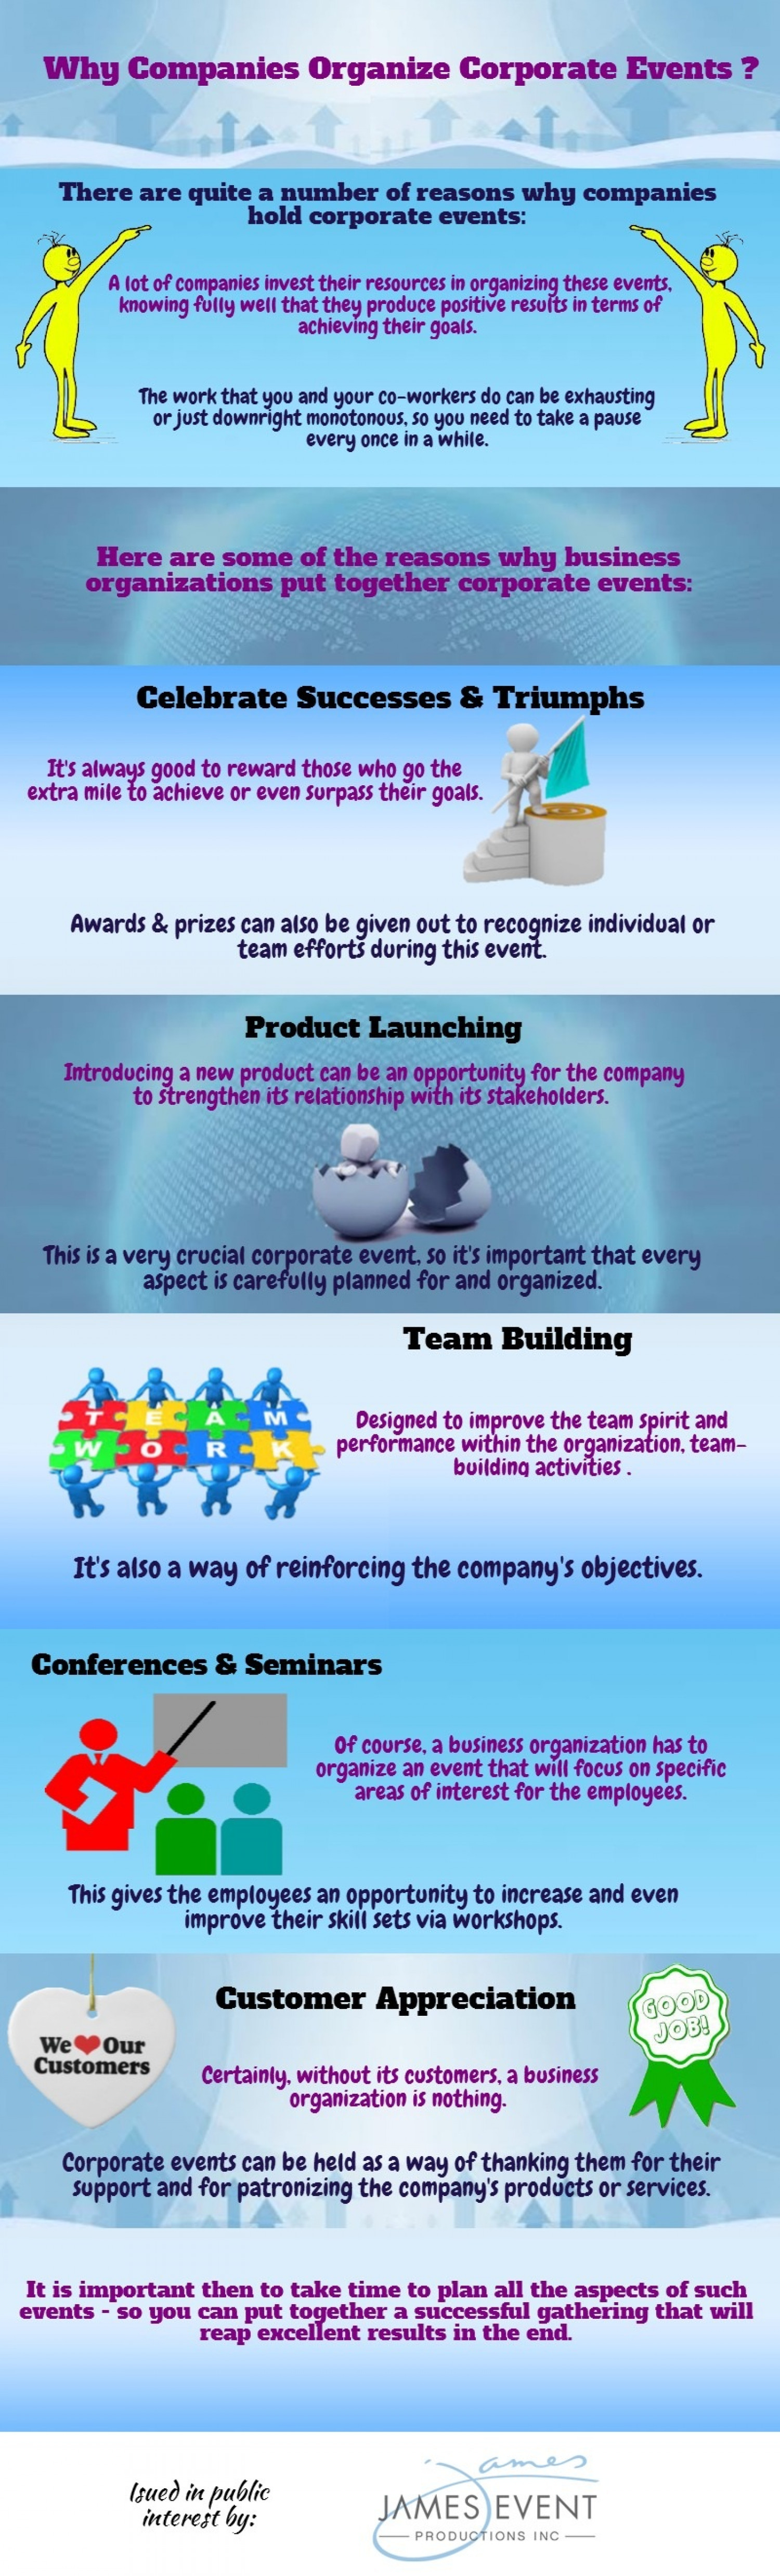 Why Companies Organize Corporate Events Infographic